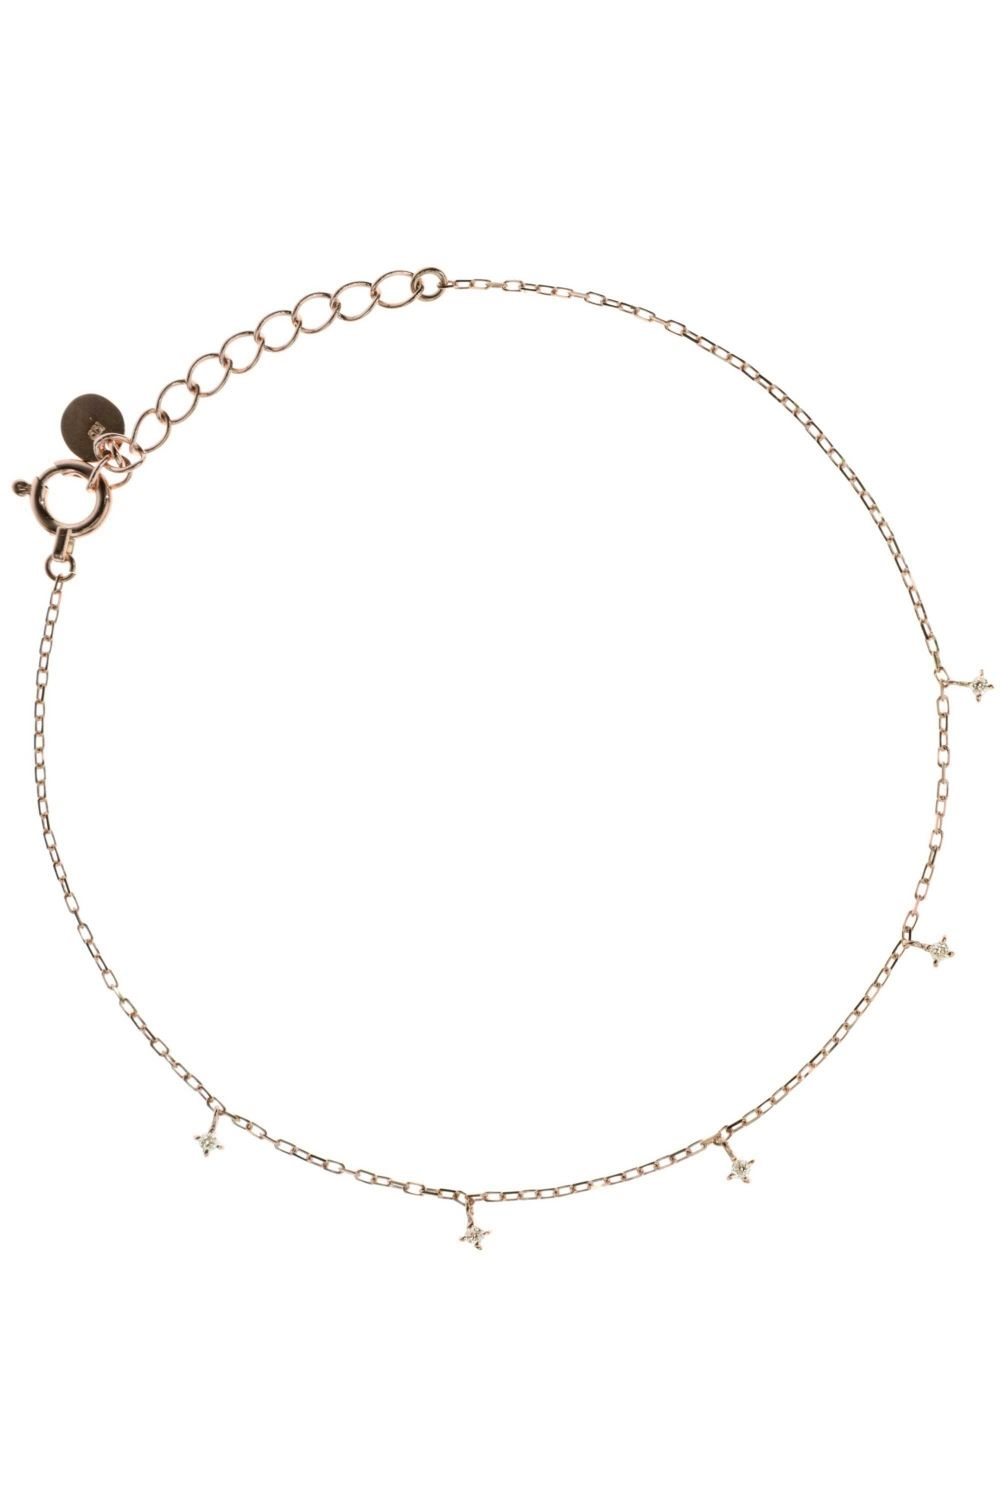 Light as a feather it wraps around your wrist. Five small diamonds sparkle eternally and underline your strong feminine side with their shine. #bracelet #diamonds #rosegold WWW.NEWONE-SHOP.COM